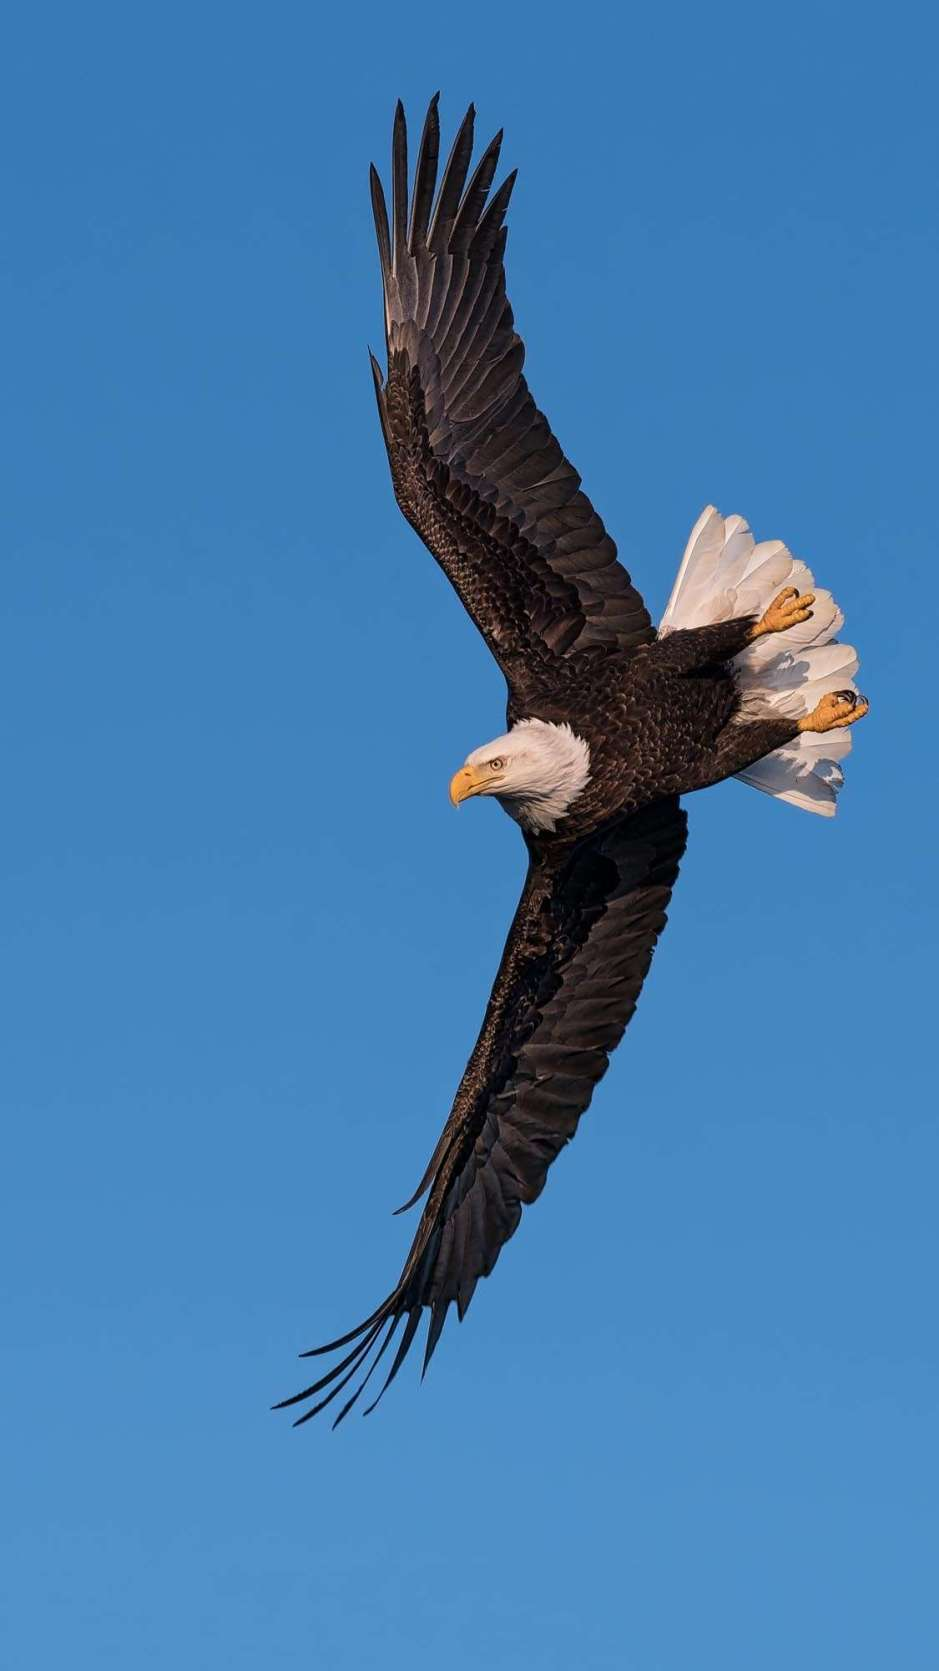 A photograph of an eagle soaring by Scott Bourne . II